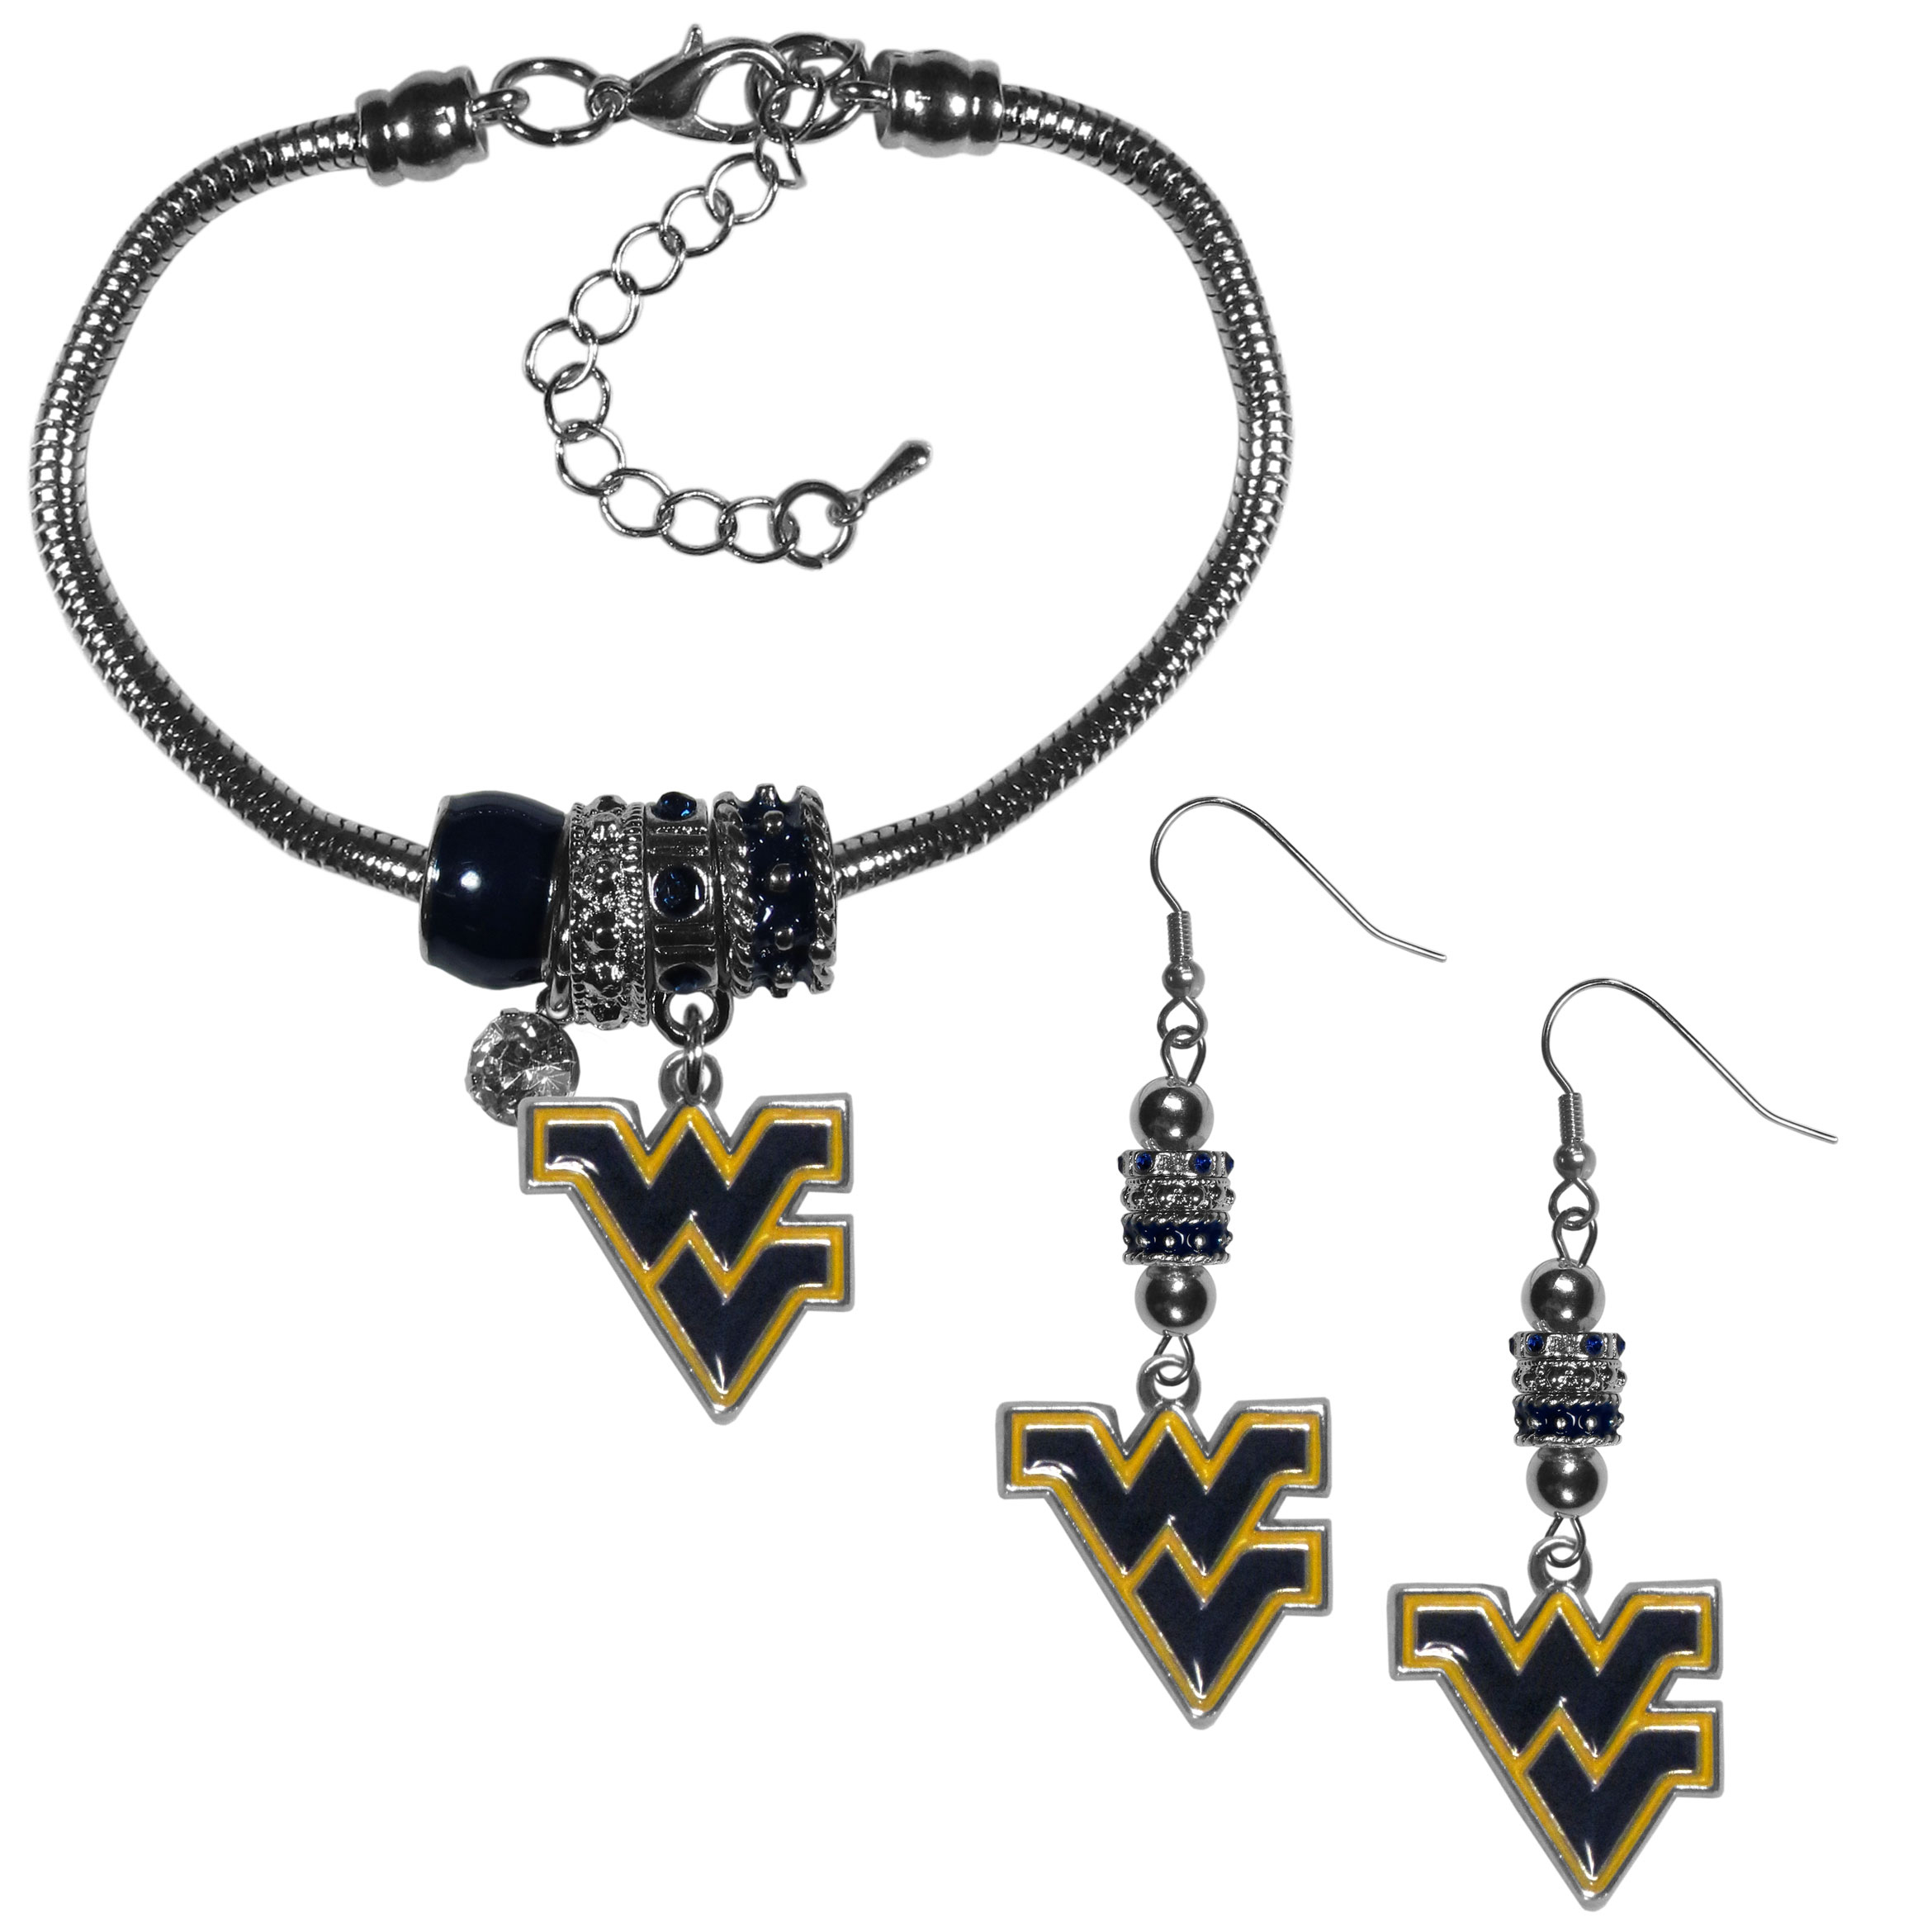 W. Virginia Mountaineers Euro Bead Earrings and Bracelet Set - We combine the popular Euro bead style with your love of the W. Virginia Mountaineers with this beautiful jewelry set that includes earrings and a matching bracelet. The stylish earrings feature hypoallergenic, nickel free fishhook posts and 3 team colored Euro beads and a metal team charm. The matching snake chain bracelet is 7.5 inches long with a 2 inch extender and 4 Euro beads with a rhinestone charm and team charm.